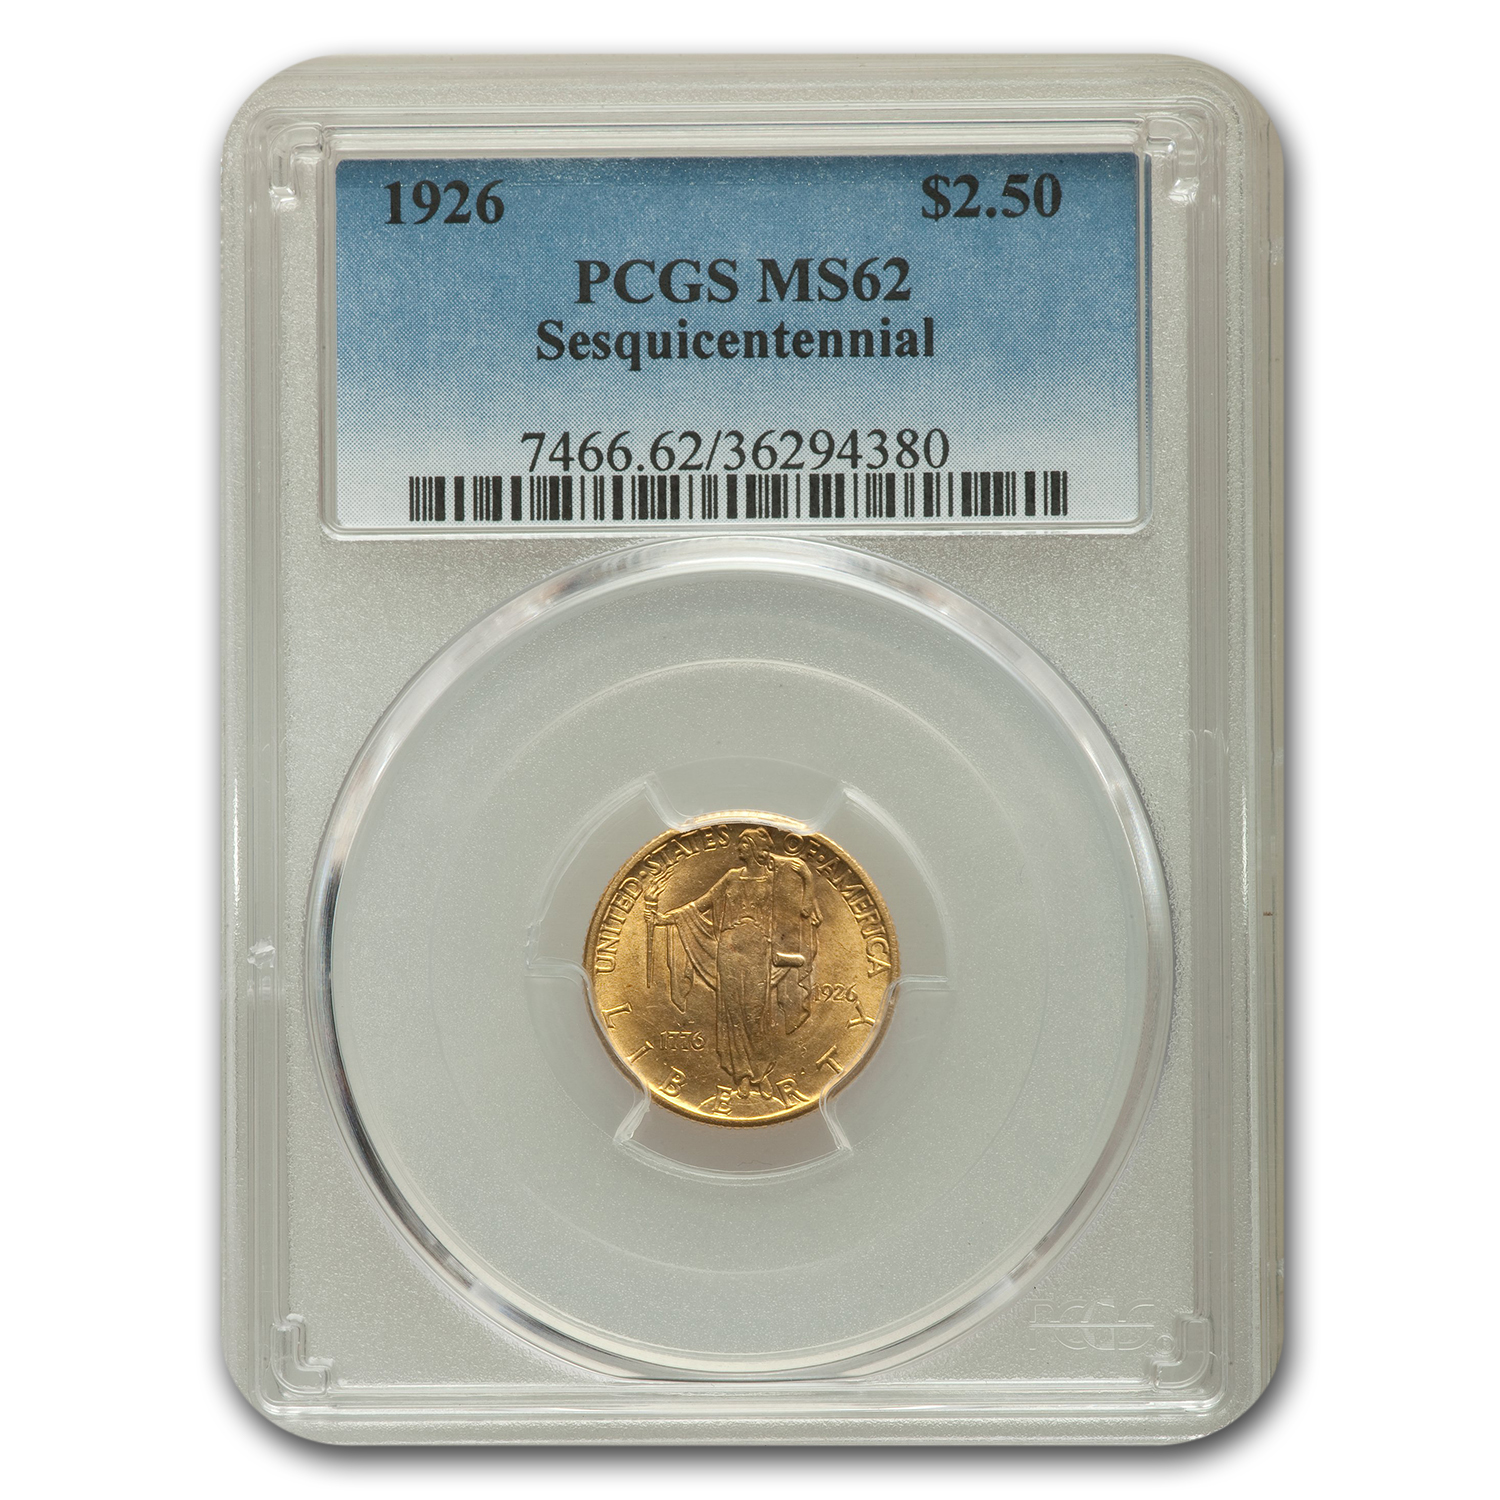 1926 Gold $2.50 America Sesquicentennial MS-62 PCGS